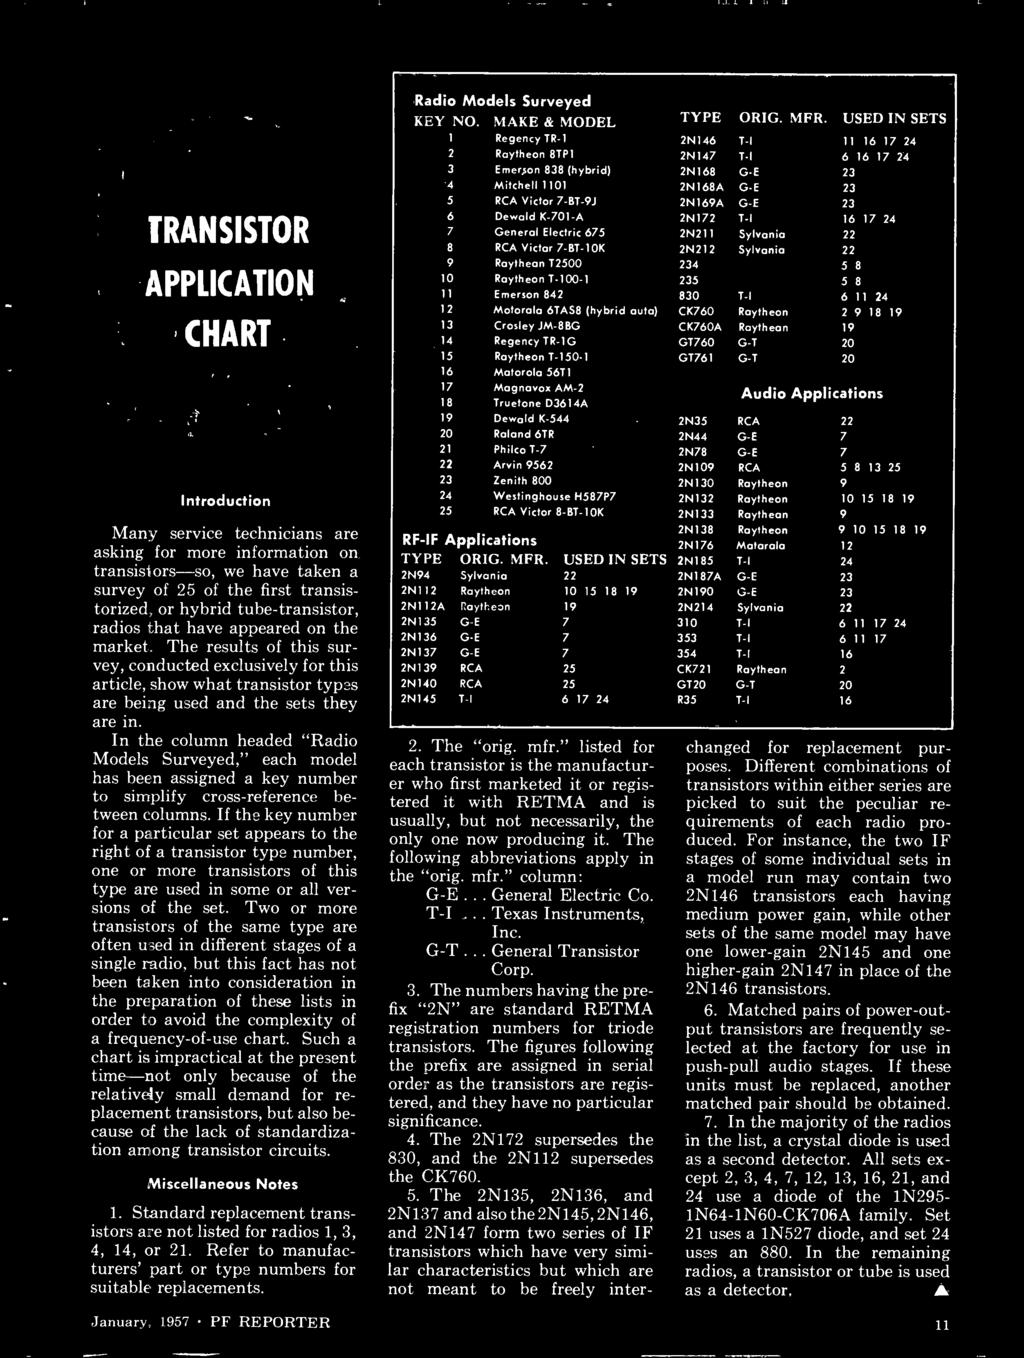 Reporter Highlights This Months Aarreedift9 424 Taught The Body Wiring Diagram For 1946 47 Cadillac Sedan Style 6109 Two Or More Transistors Of Same Type Are Often Used In Different Stages A